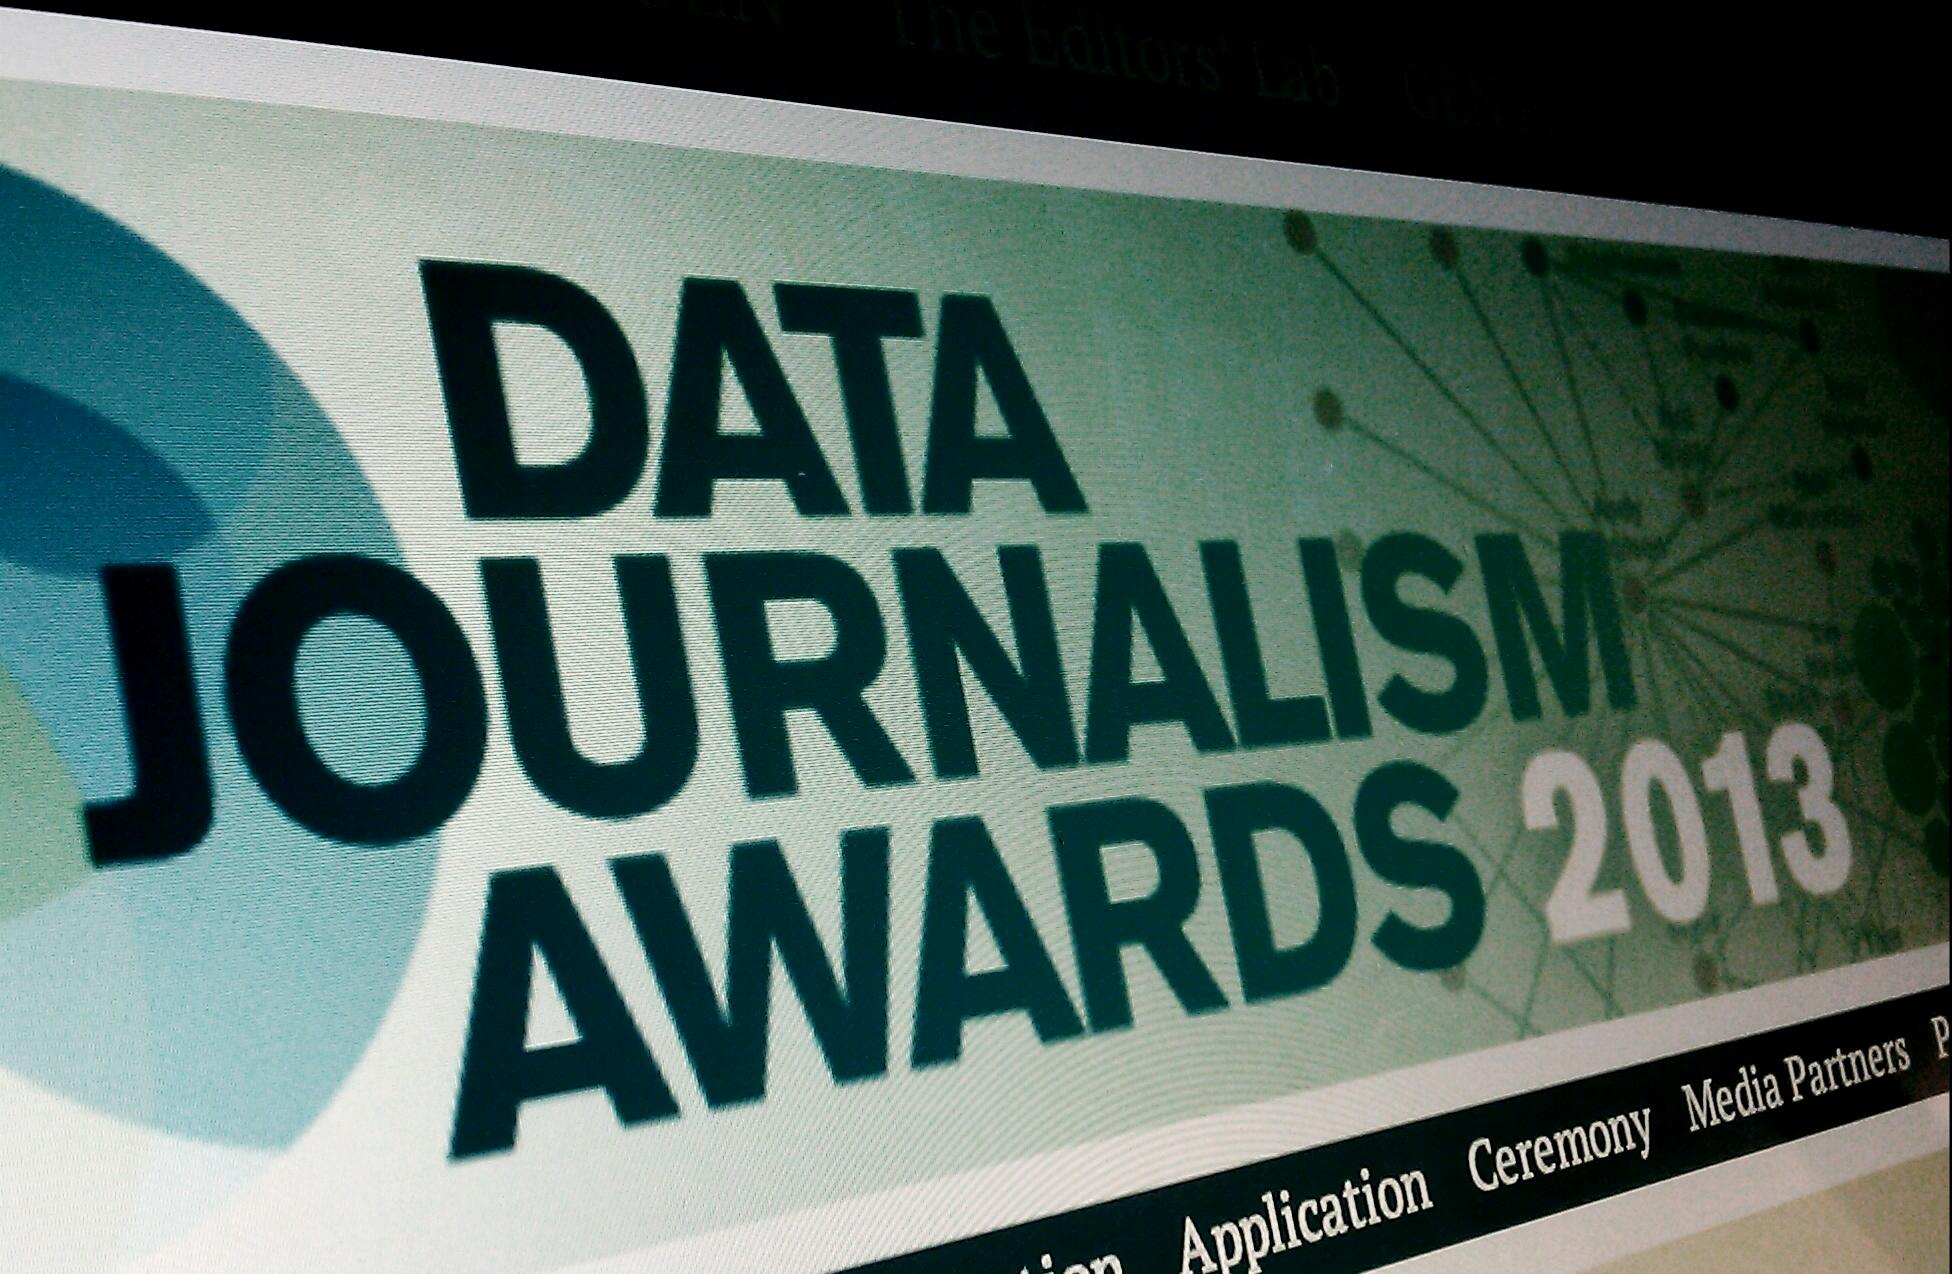 Data Journalism Awards 2013